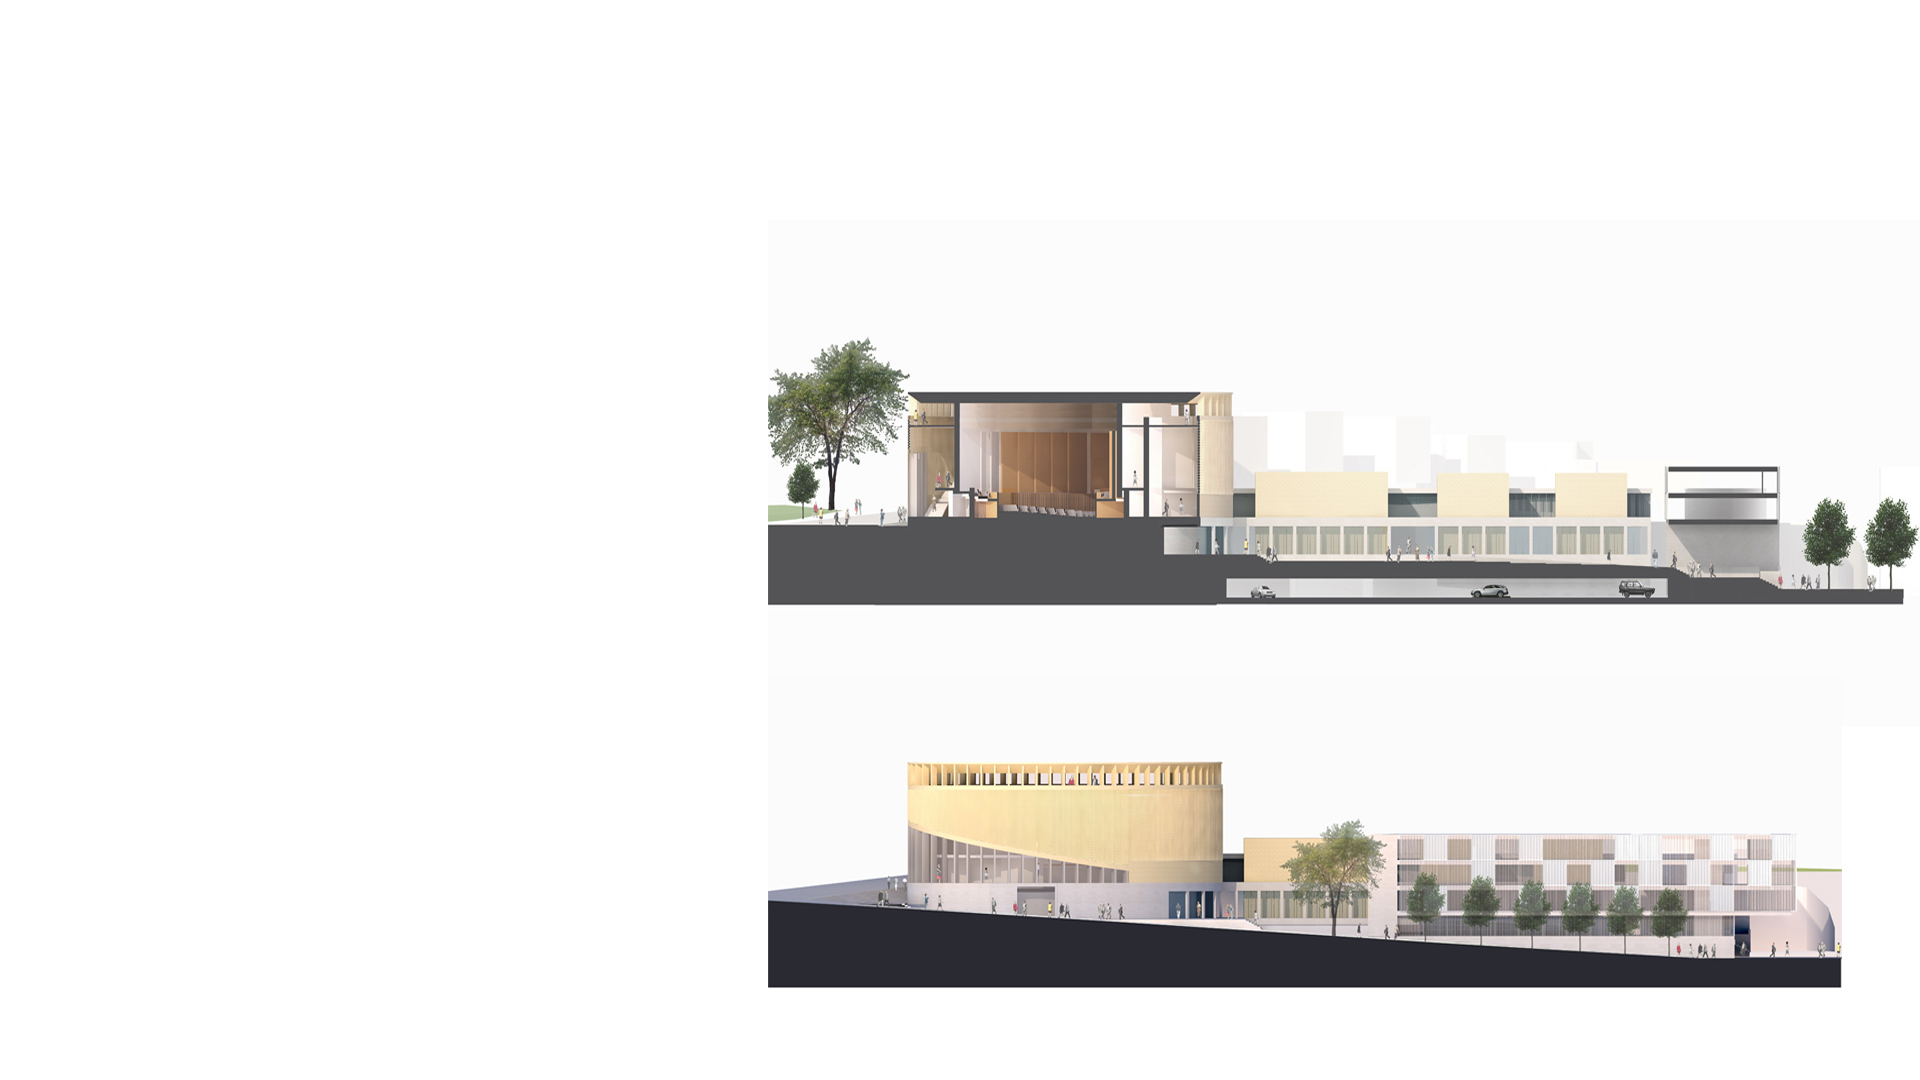 Context elevation and section at the Kronberg Academy & Music School